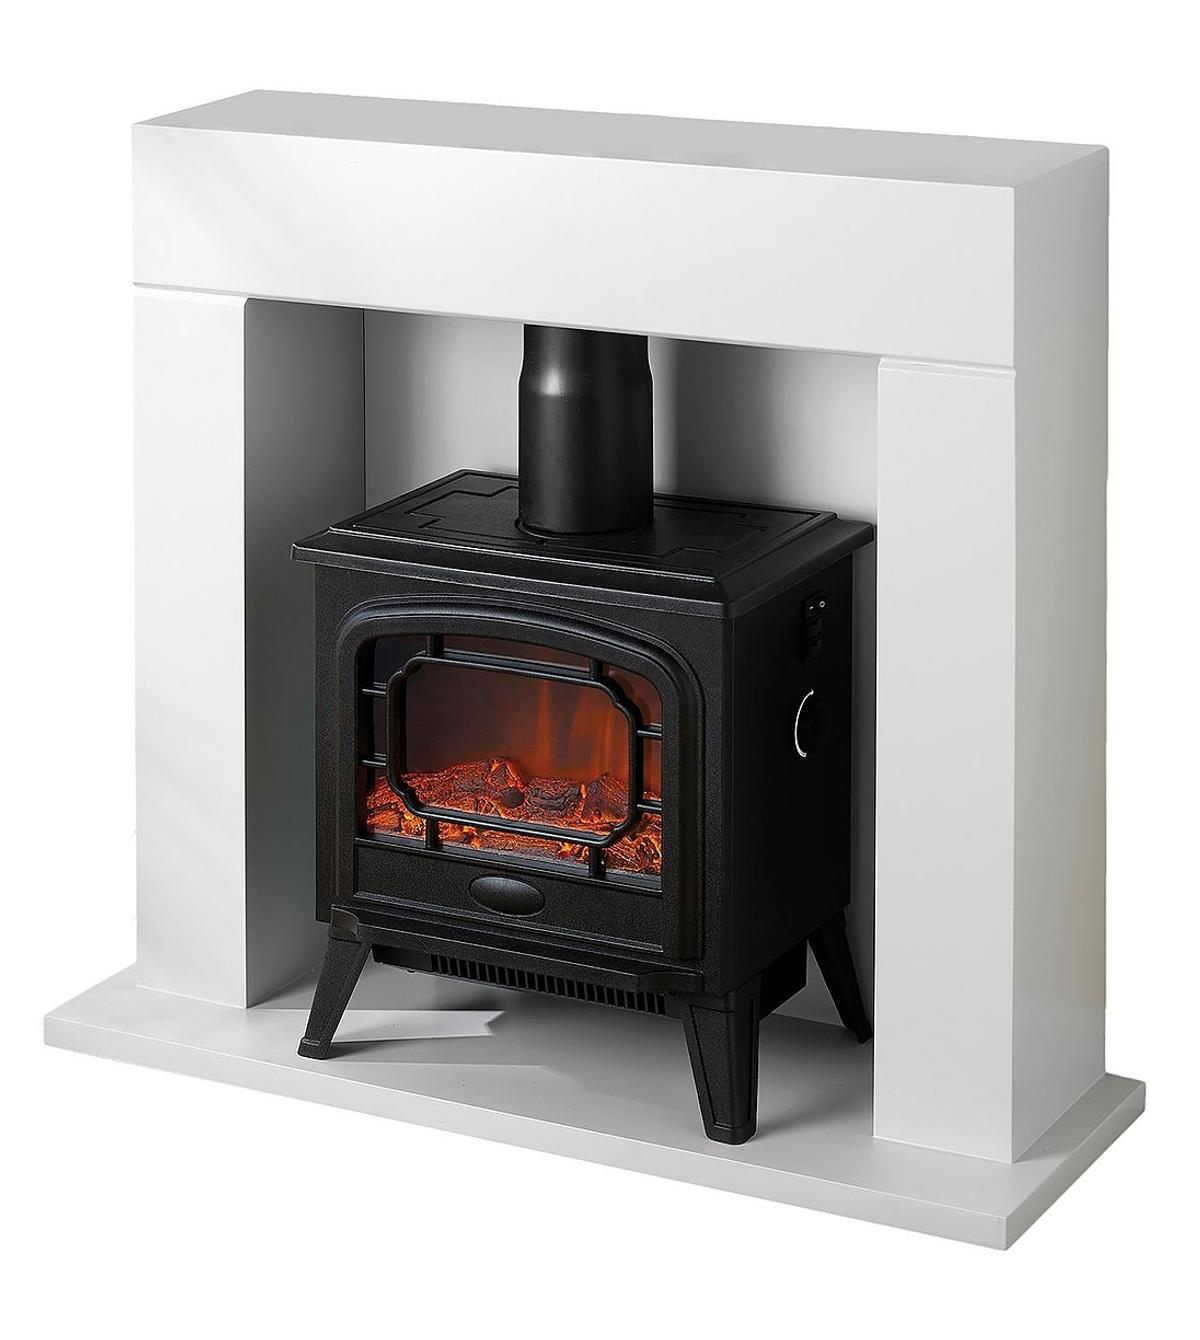 Egl Electric Stove Fireplace Suite White In M350bn Failsworth For